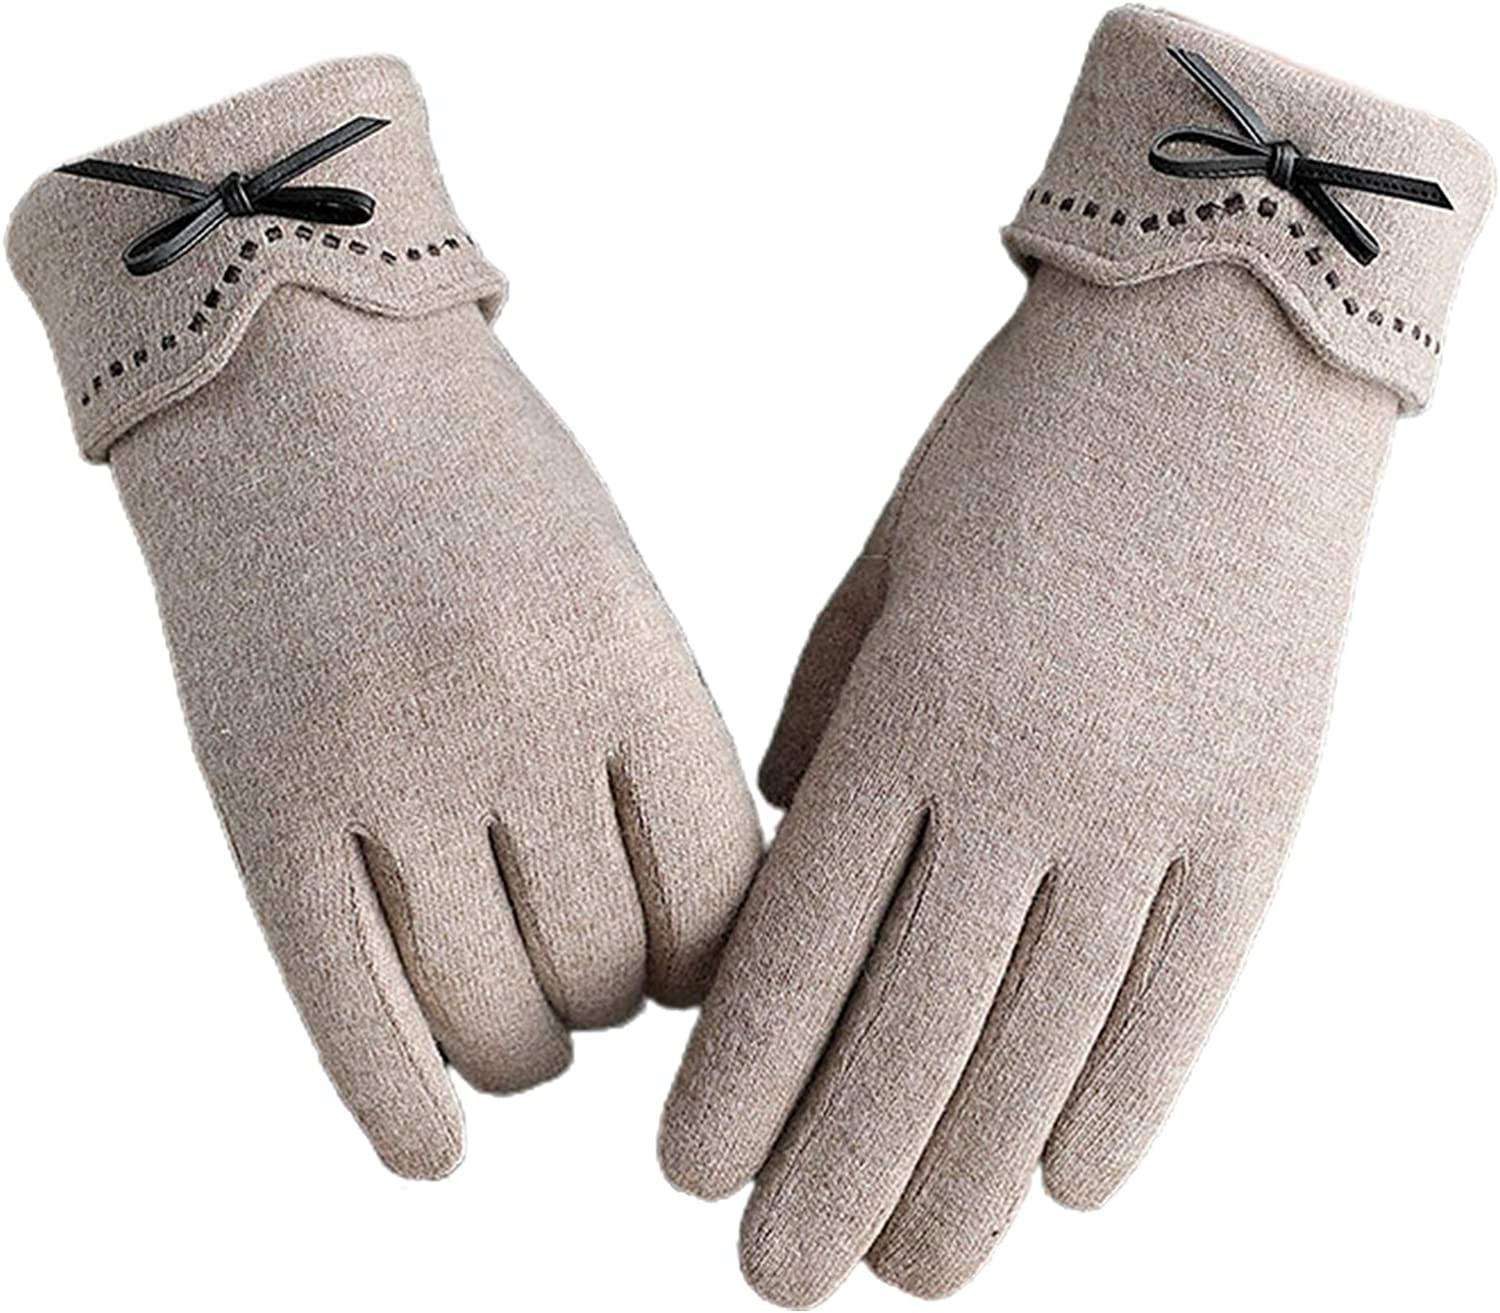 Winter Gloves for Women, Warm Touchscreen Texting Gloves Faux Wool Cute Bowknot Plush Soft Linin Mittens for Running Driving